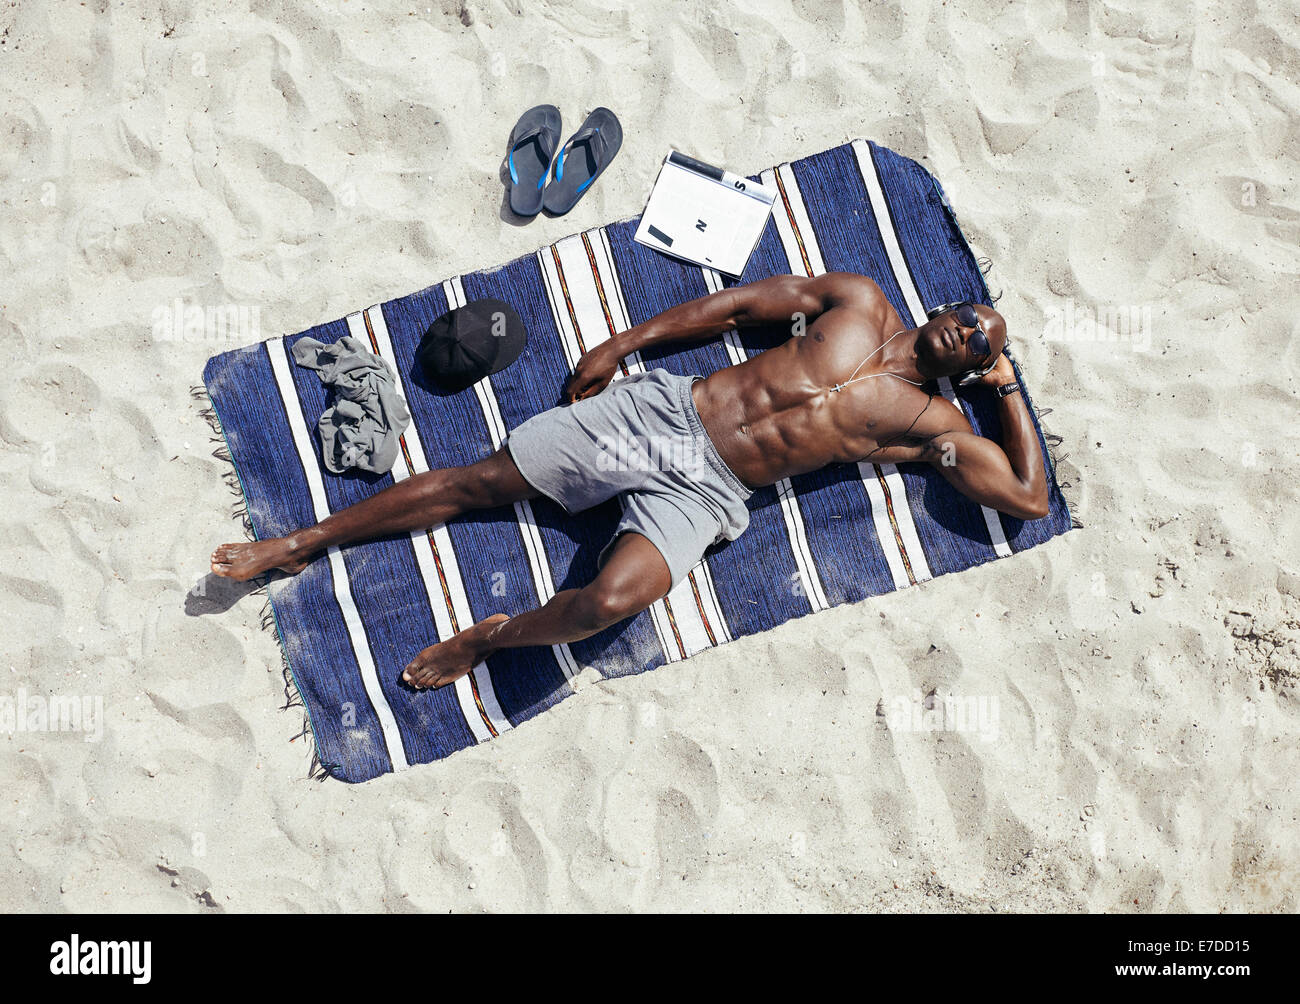 Top view of muscular young man sunbathing on beach. African guy wearing sunglasses and listening to music on headphones - Stock Image